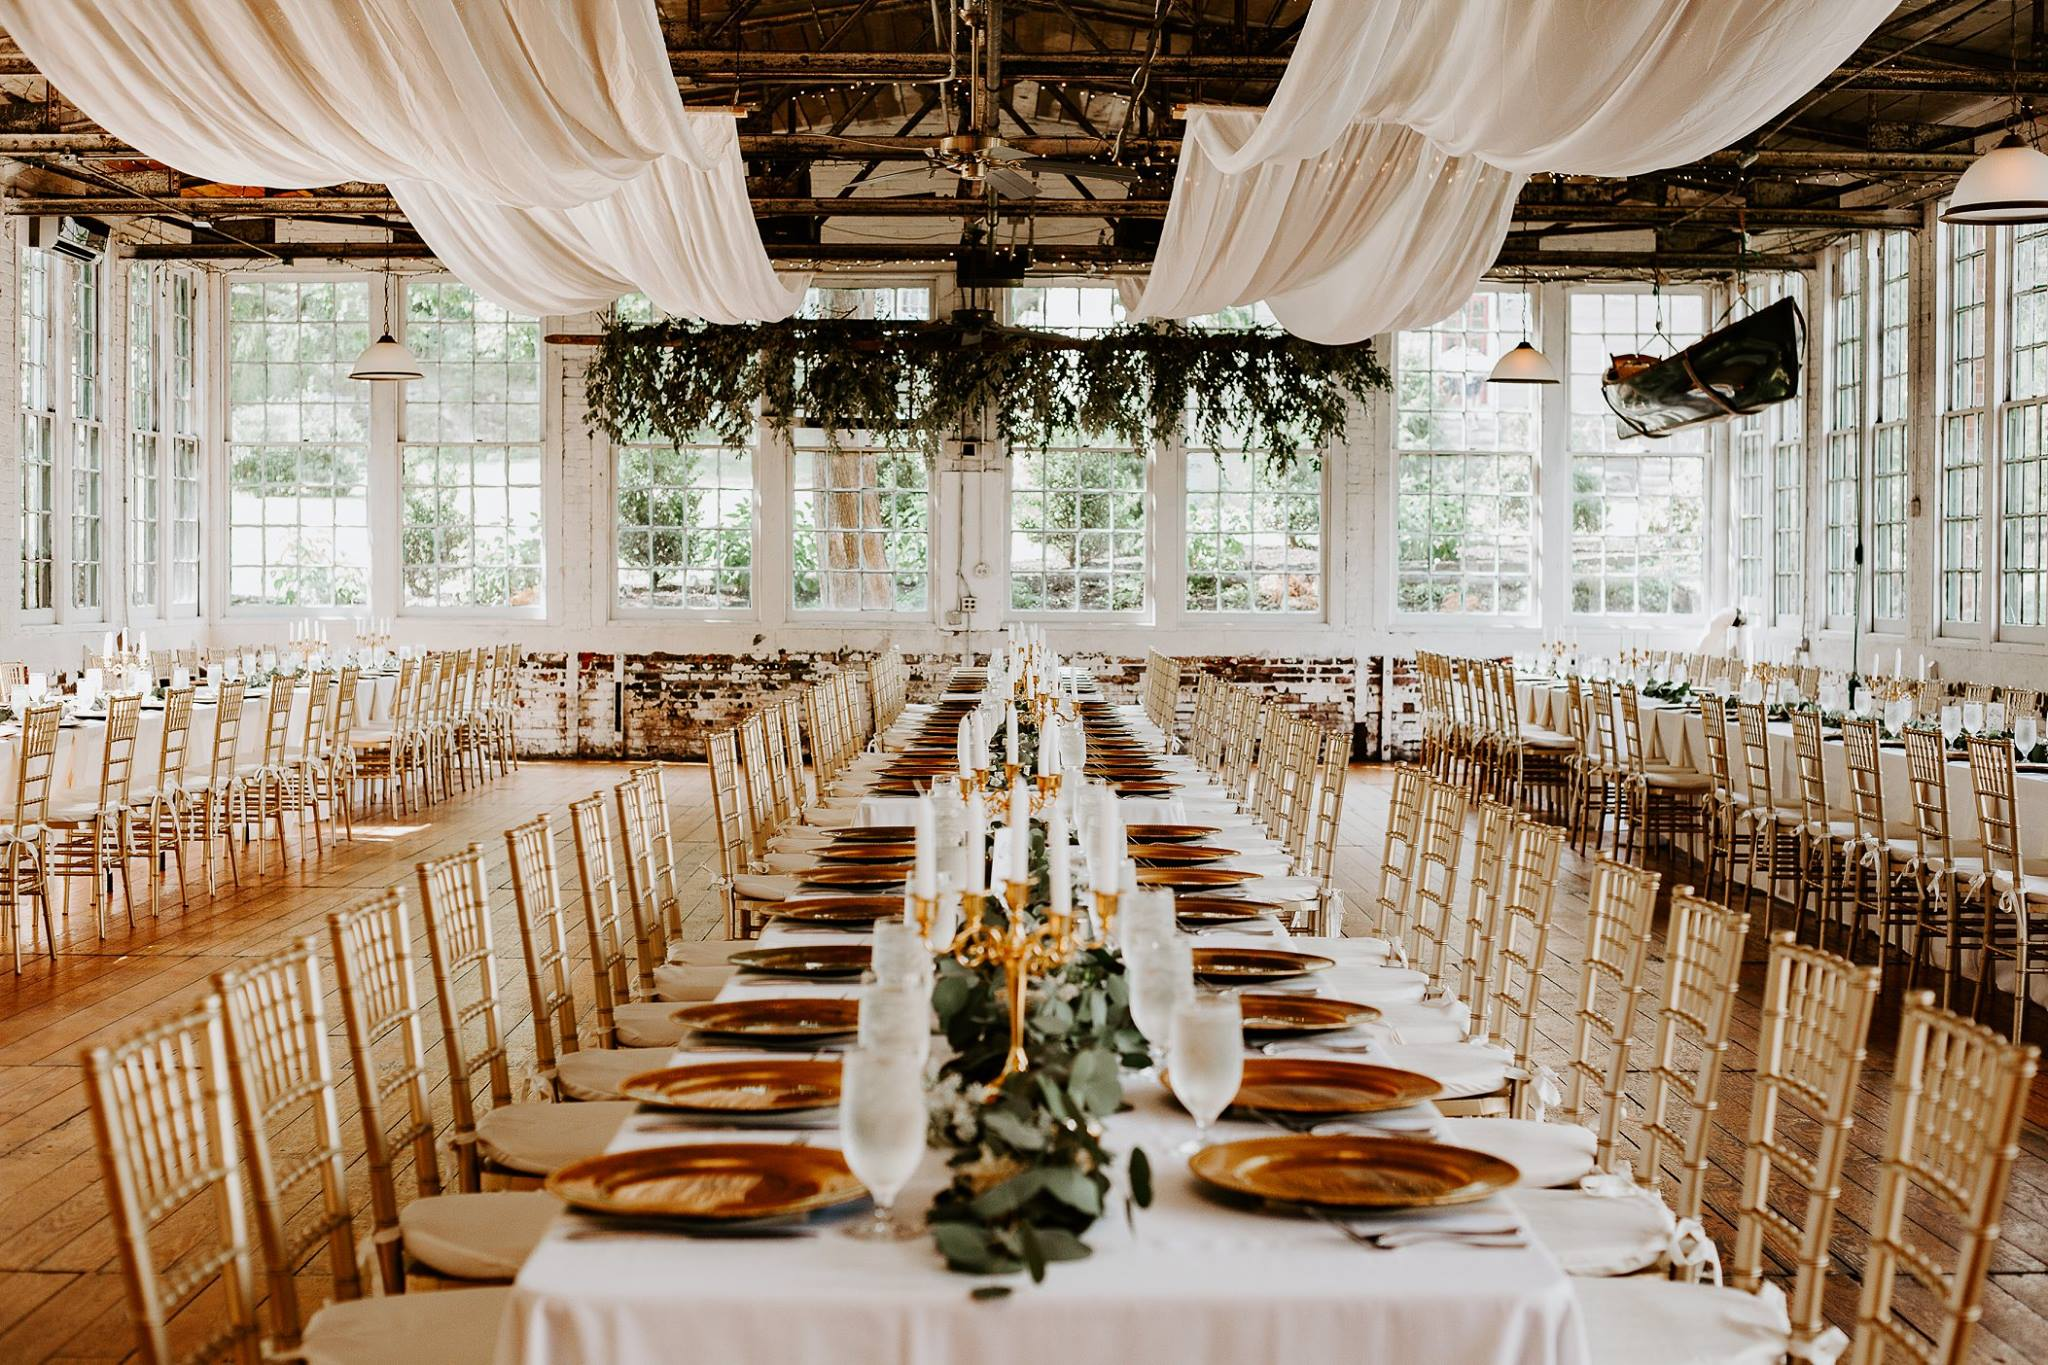 Rustic catering venue. Long white table with gold chairs, gold plates and white ceiling drapery.